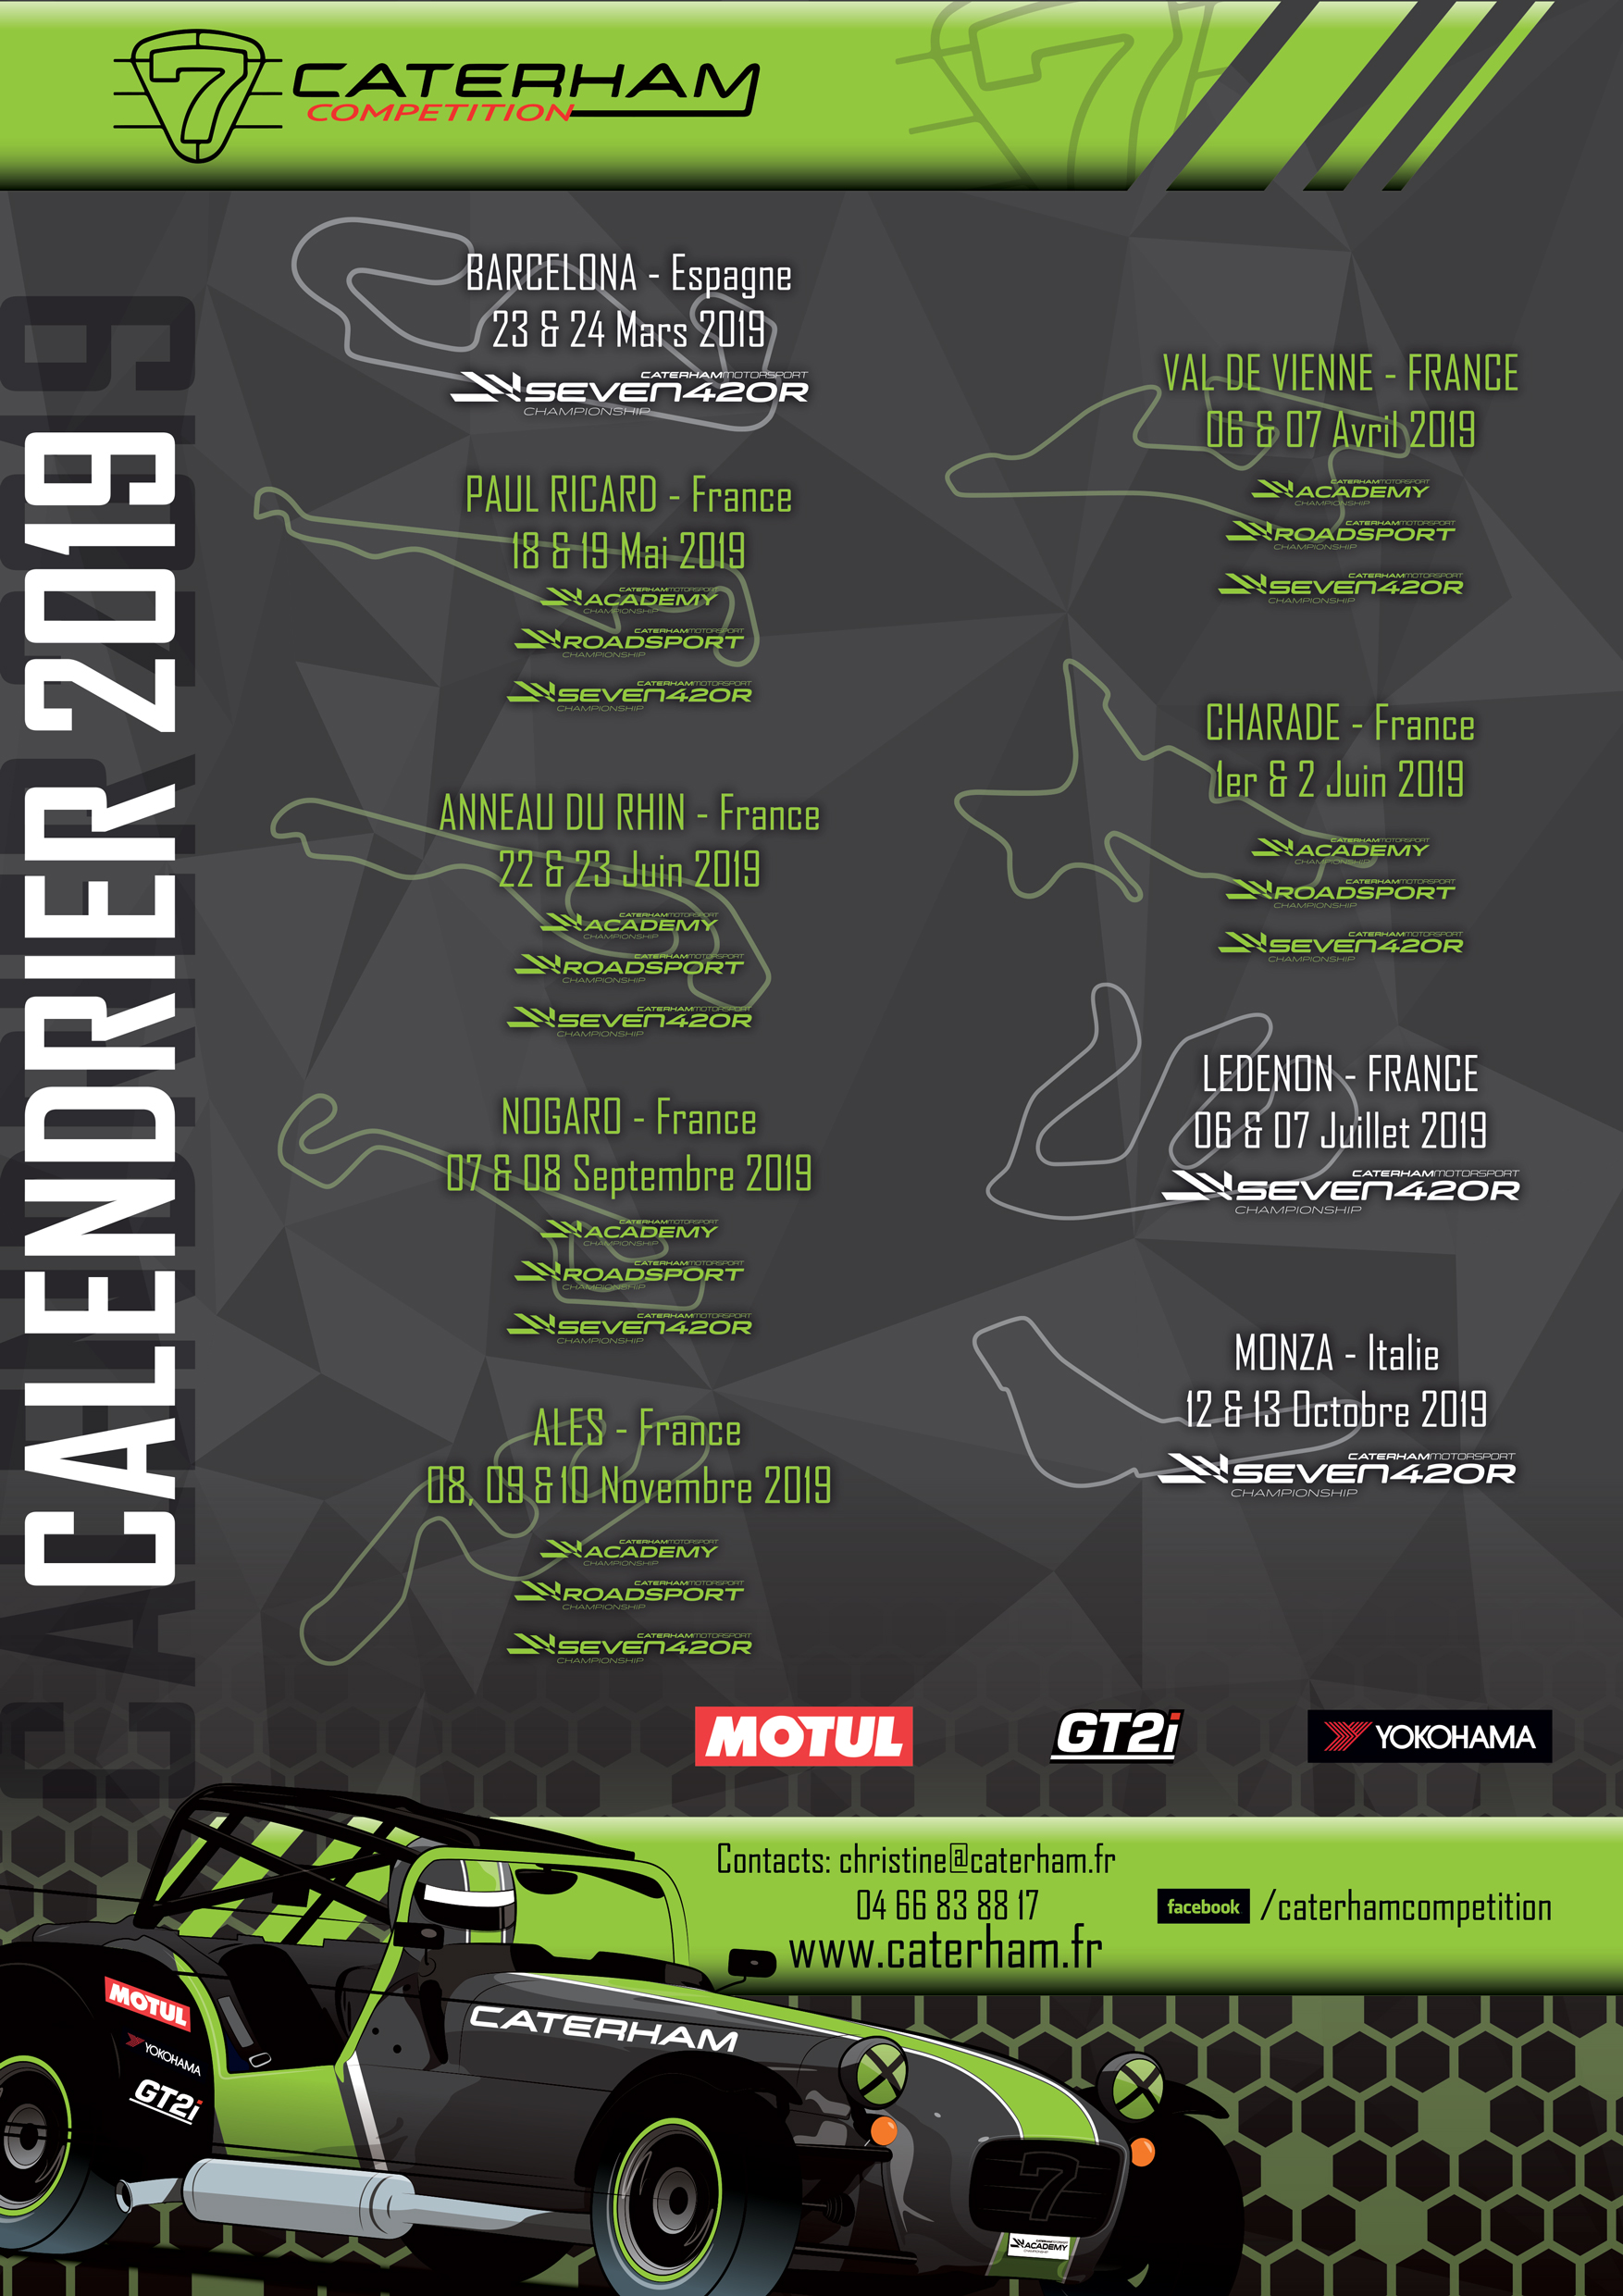 Caterham_ Competition_Calendrier_2019